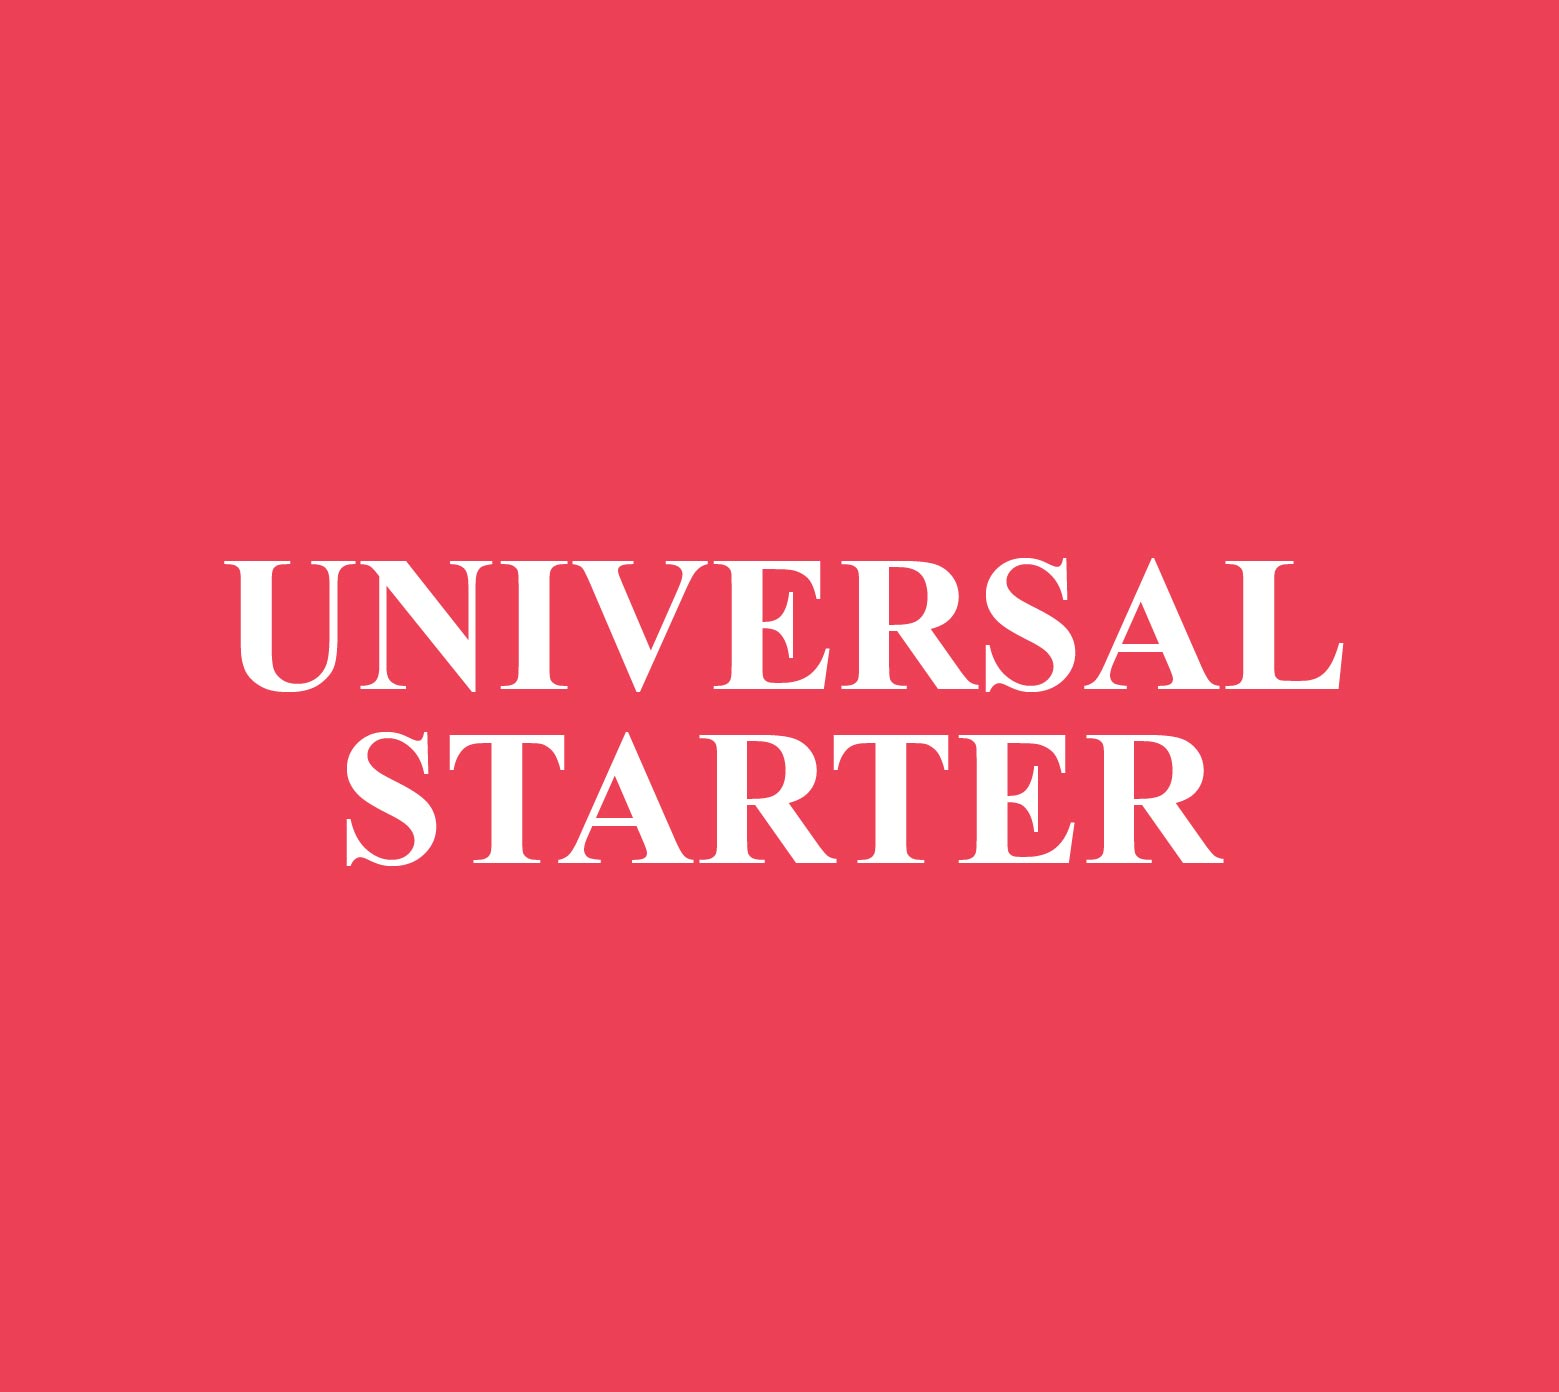 Universal Starter Roofing Shingle Accessories